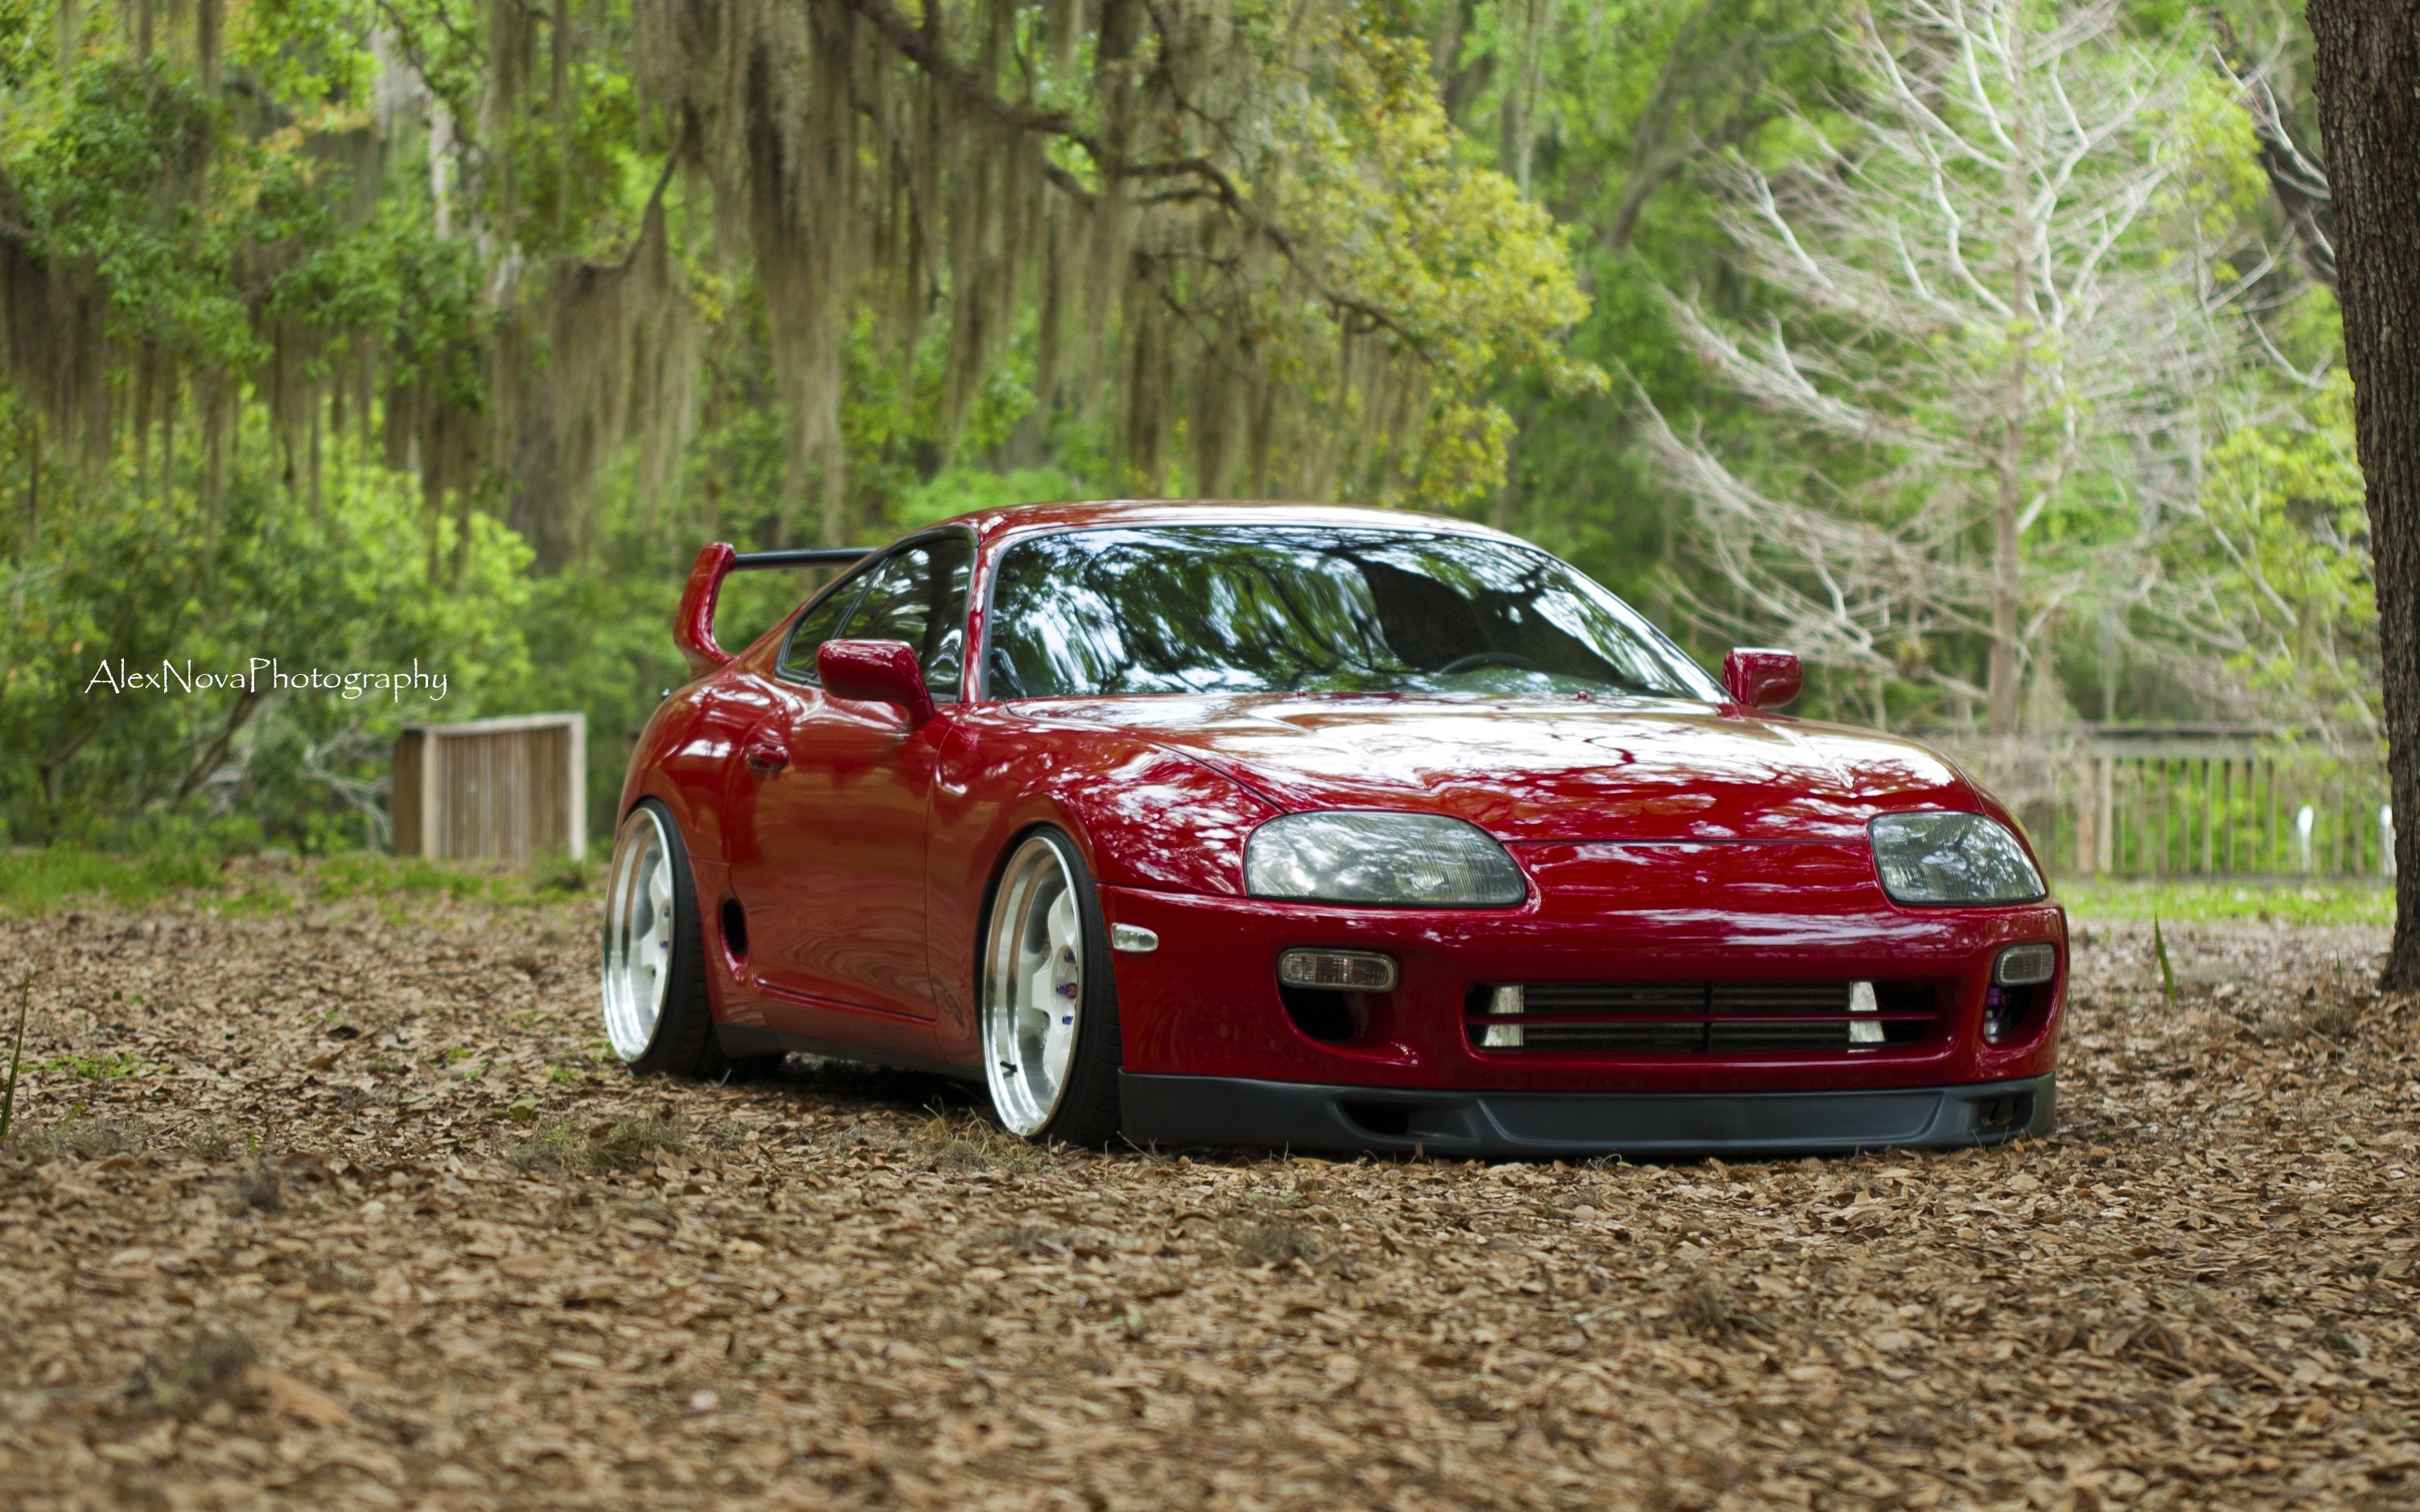 Cool Tuner Cars >> Tuned Car Wallpapers (65+ images)